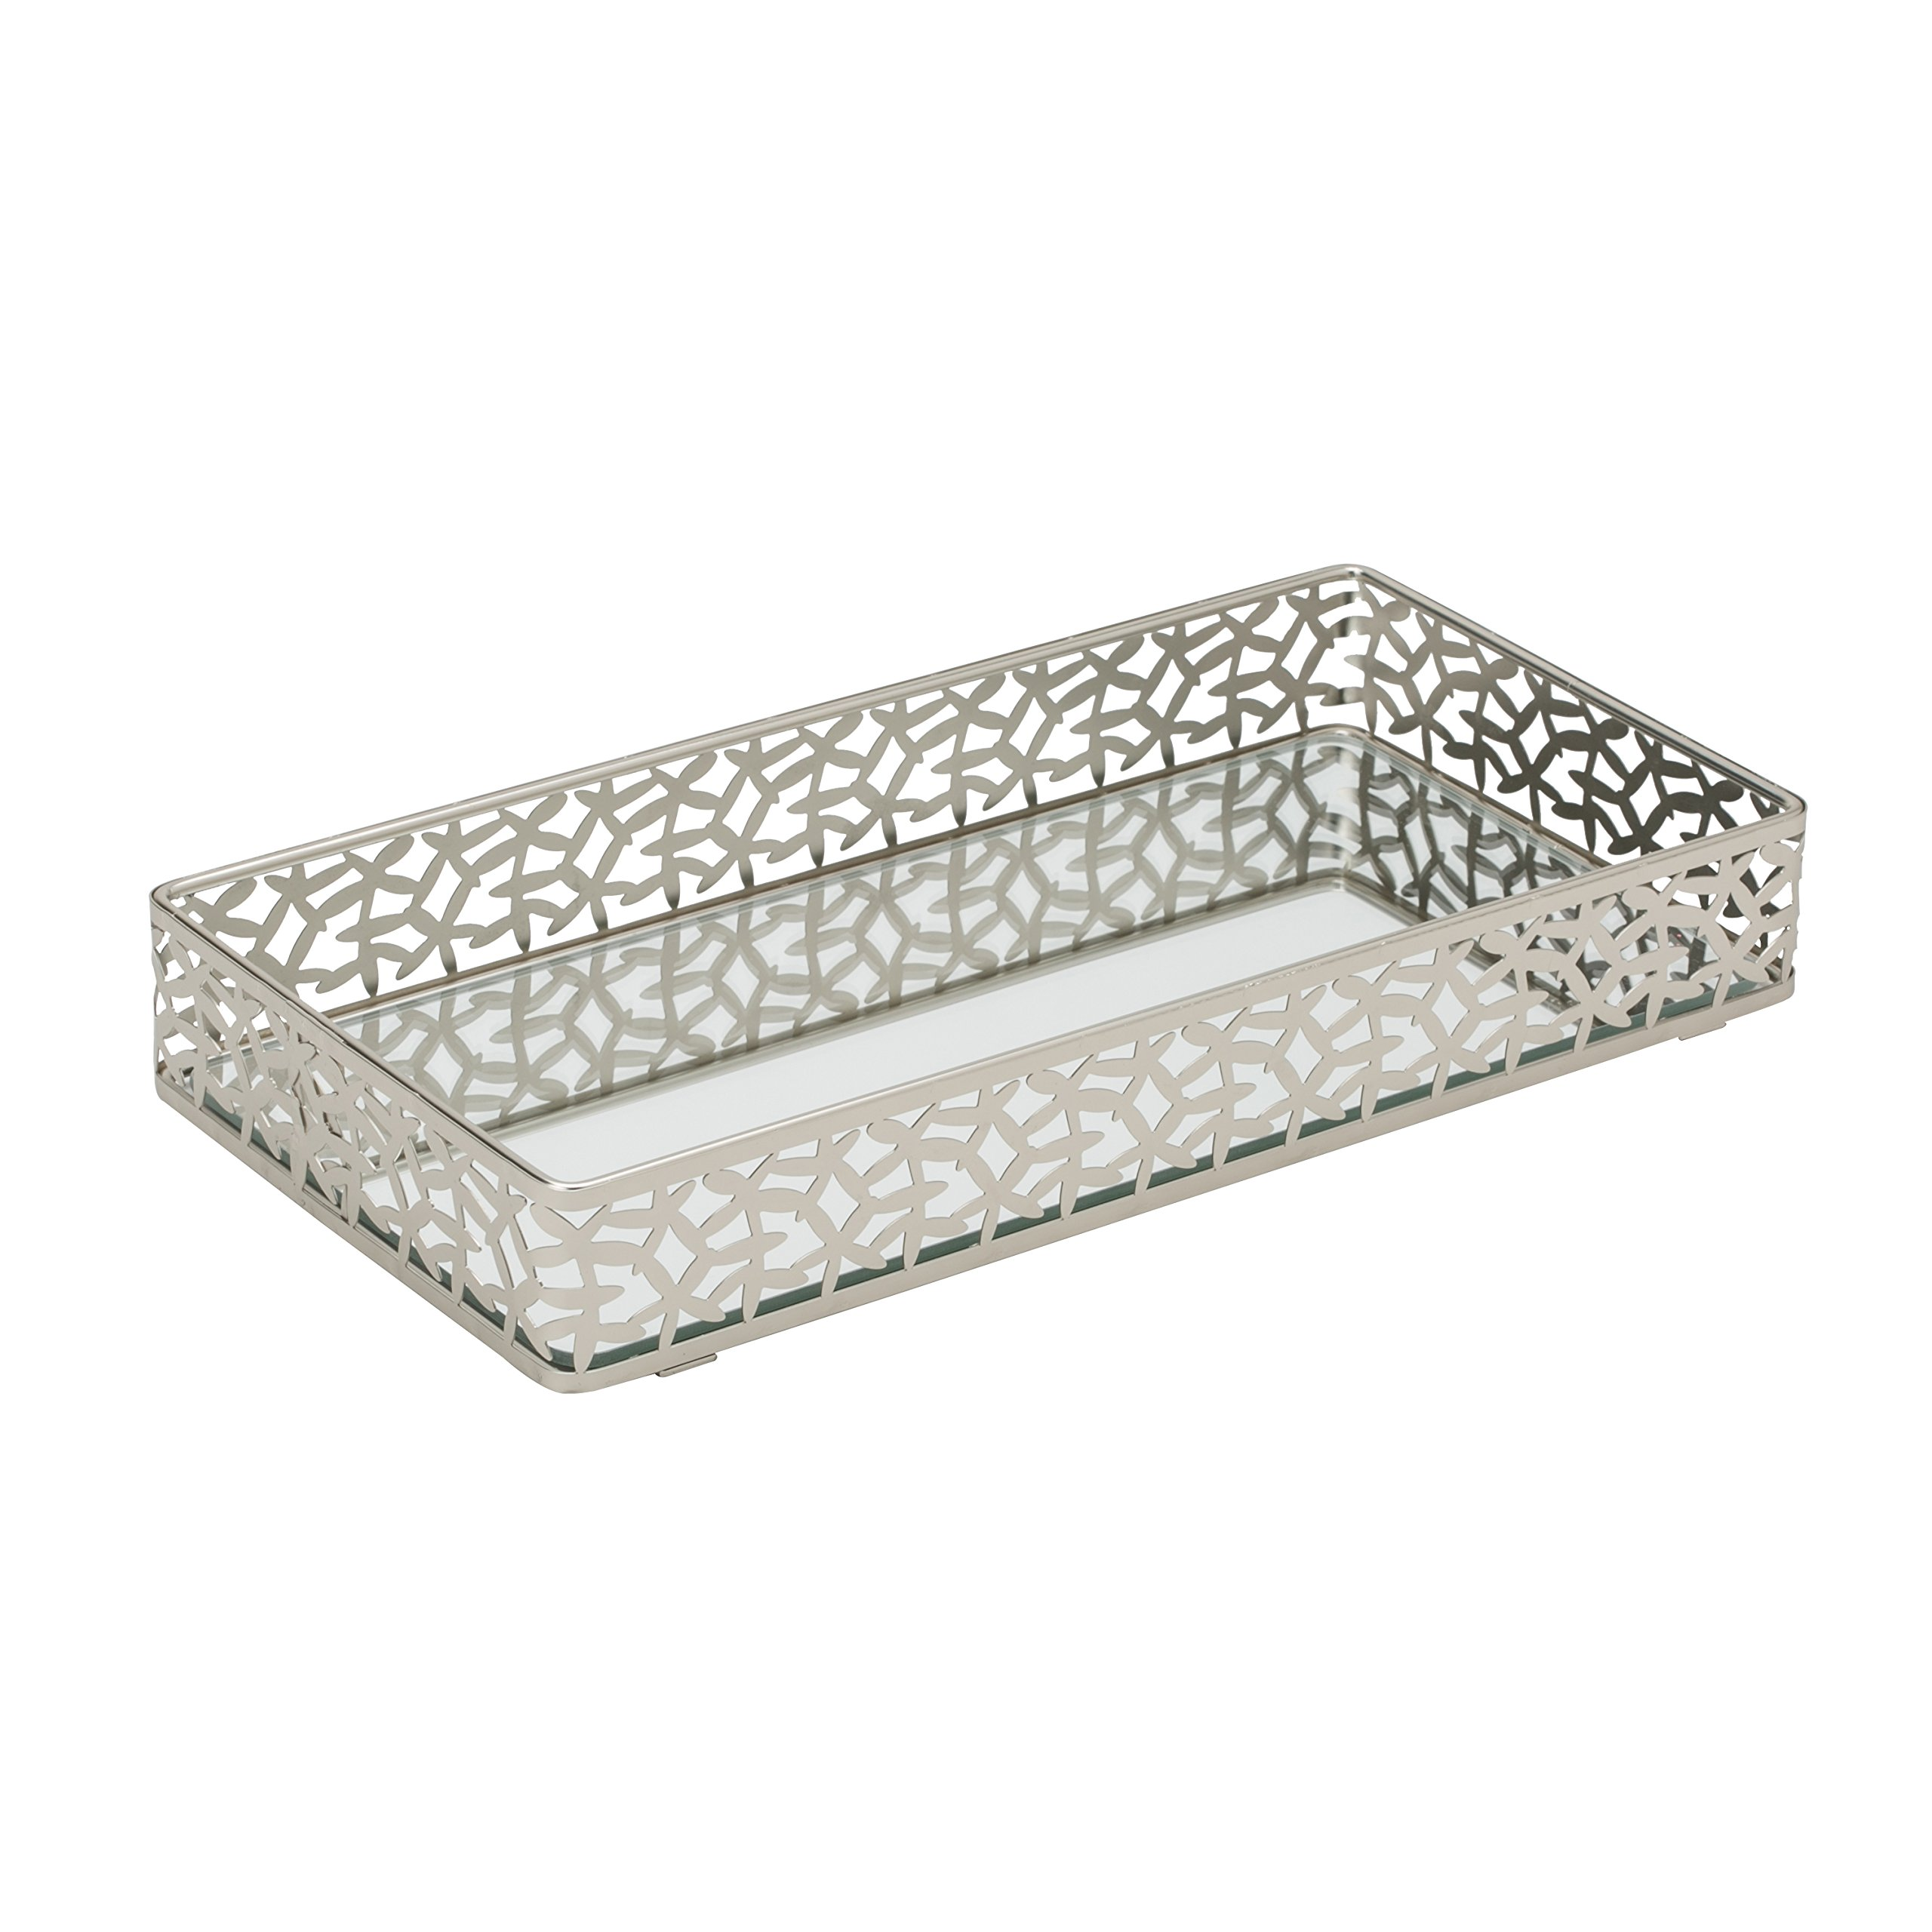 Home Details Mirrored Vanity Tray for Dresser, Perfume, Desk, Cosmetic & Jewelry Organizer, Decorative, Satin Silver